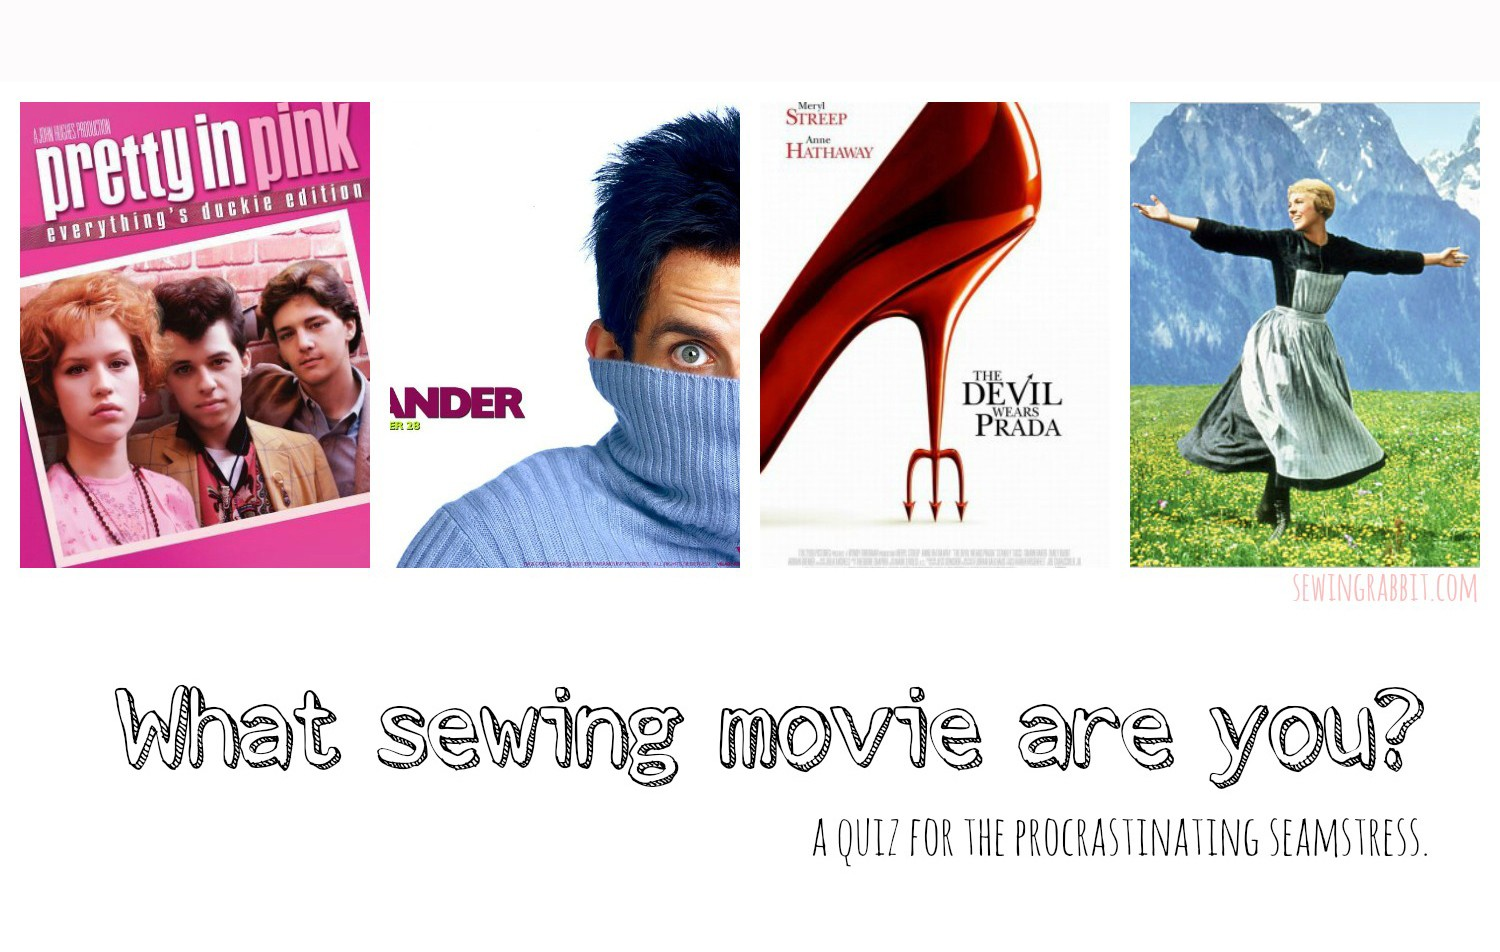 What Sewing Movie are You?